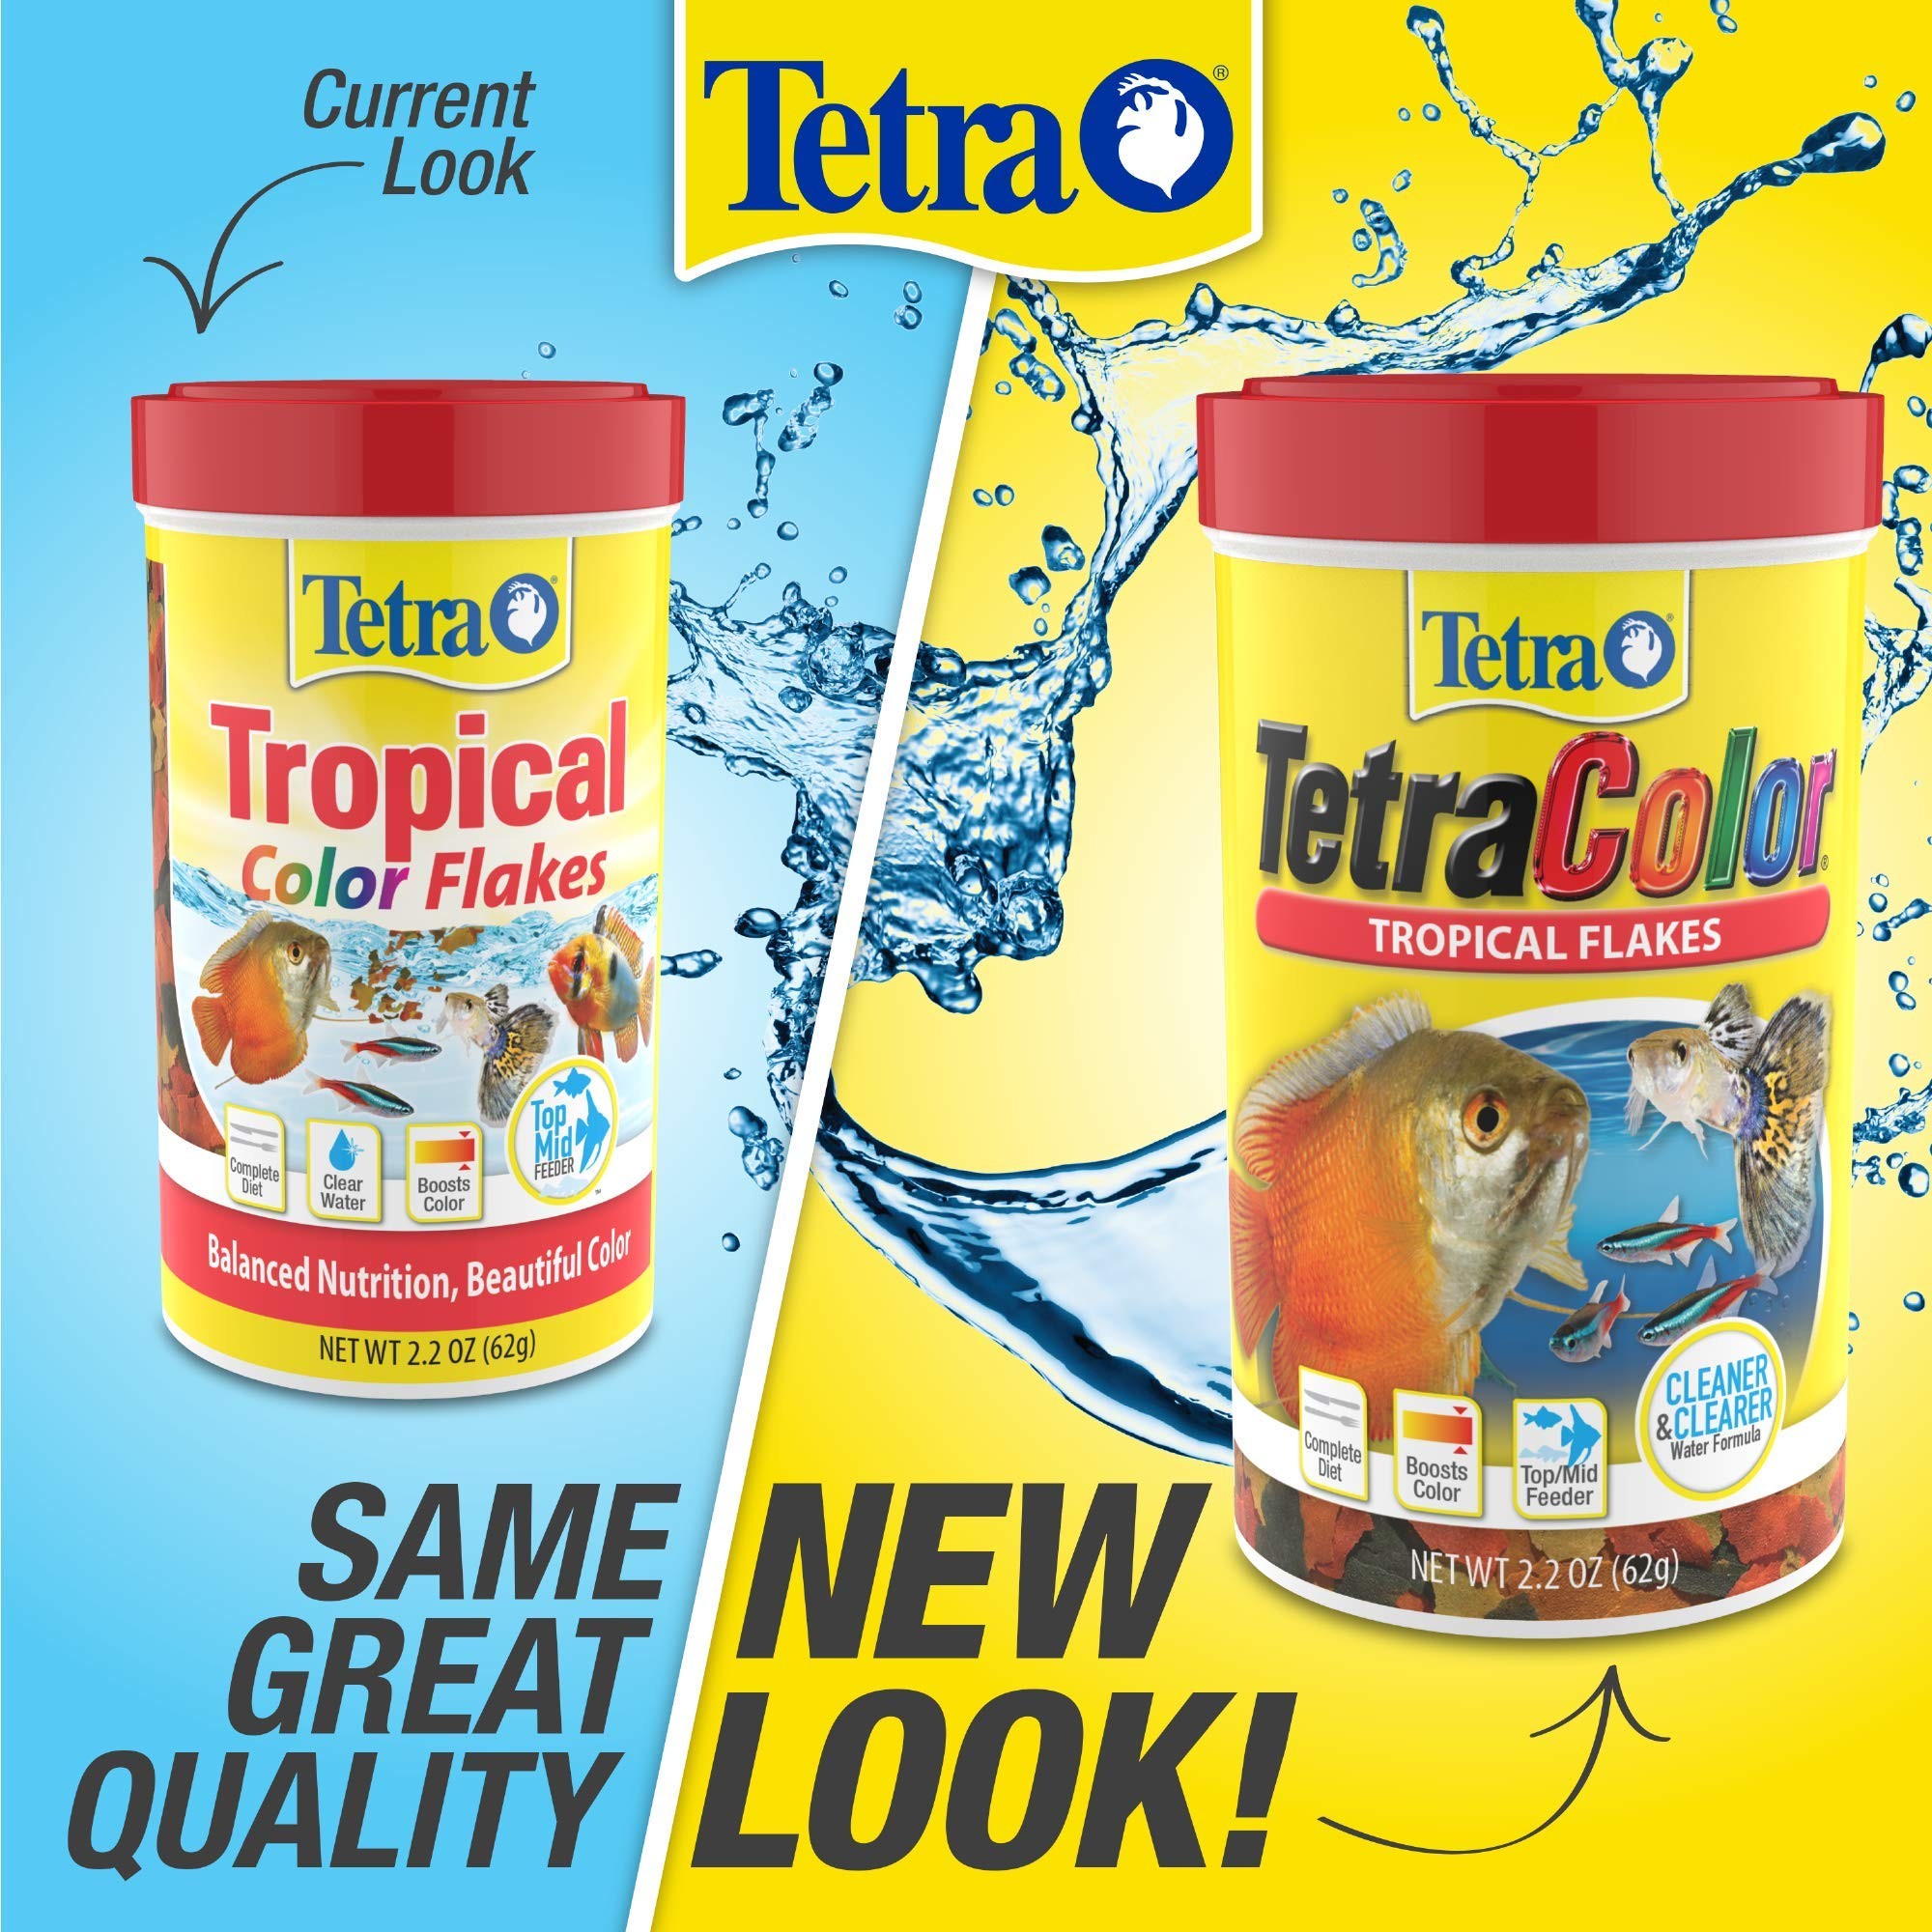 Tetra TetraColor PLUS Tropical Fish Flakes, 7.06-Ounce by Tetra